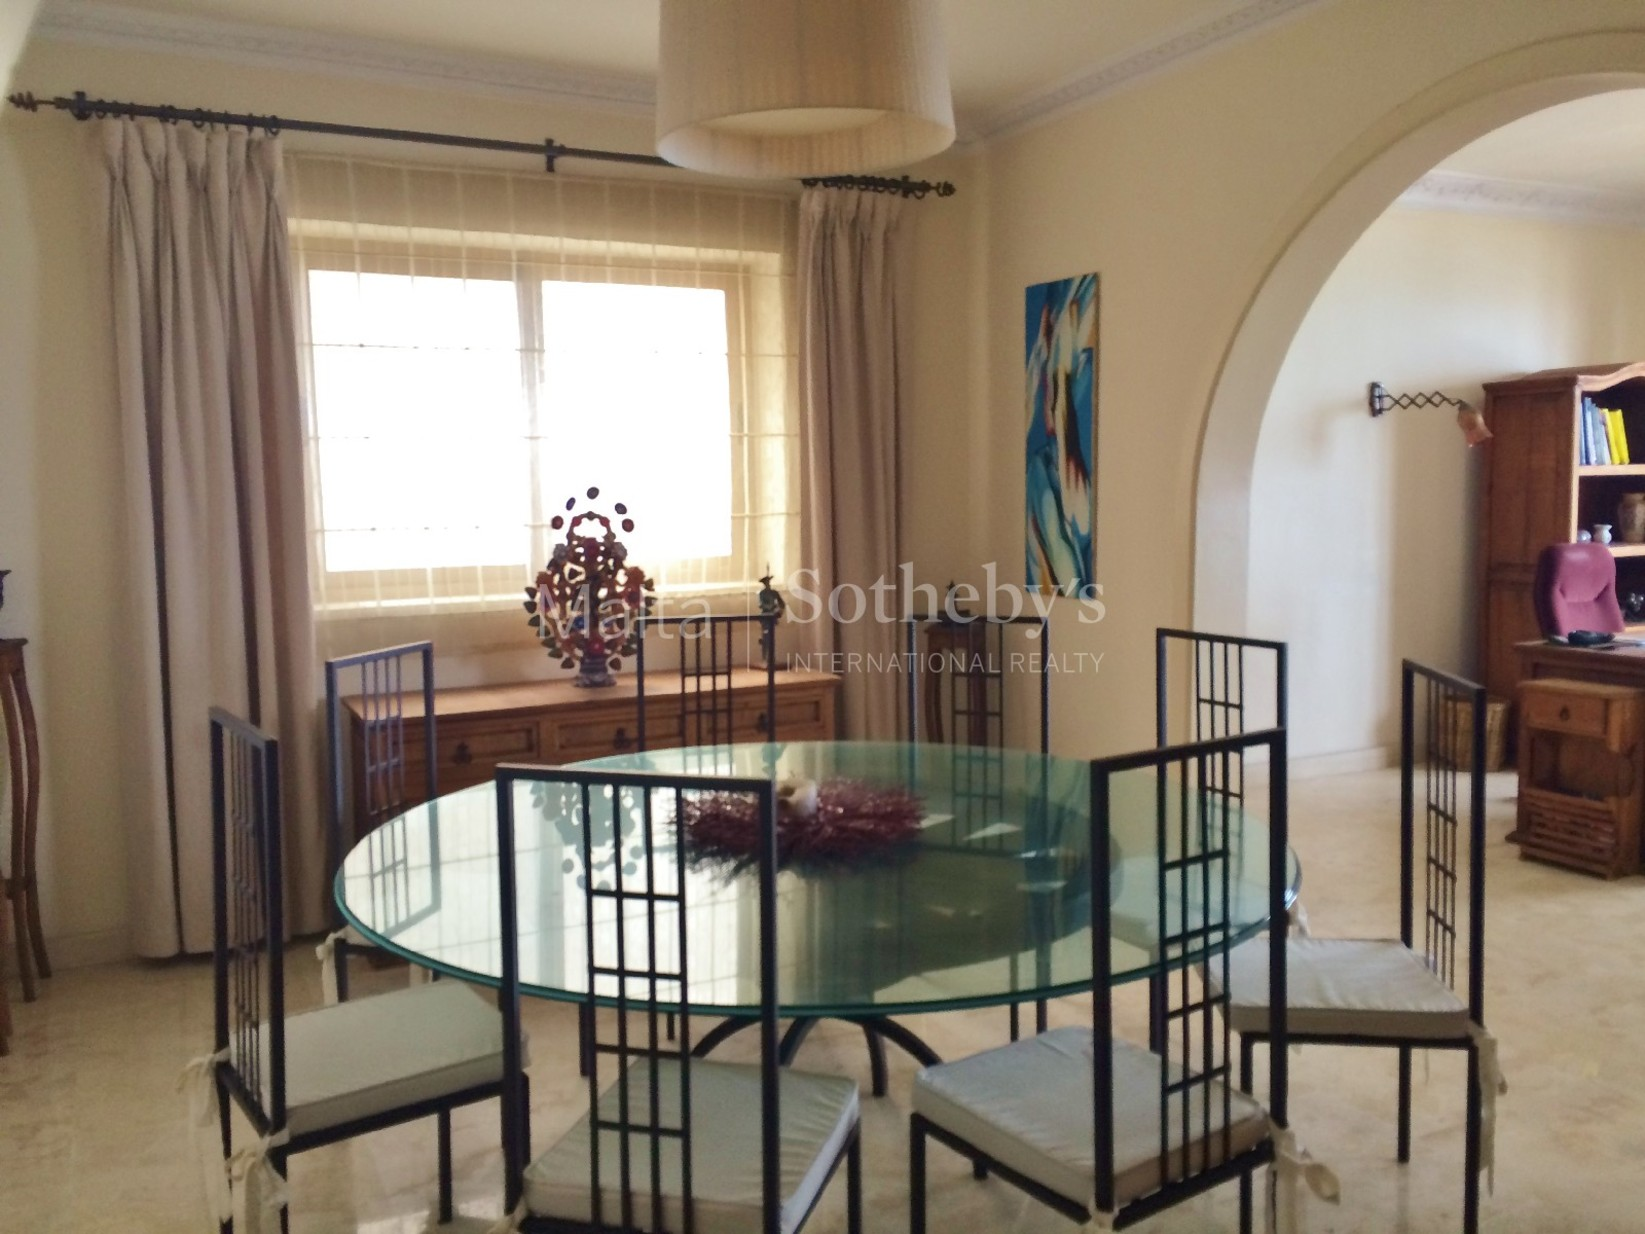 2 bed Apartment For Rent in Sliema, Sliema - thumb 9